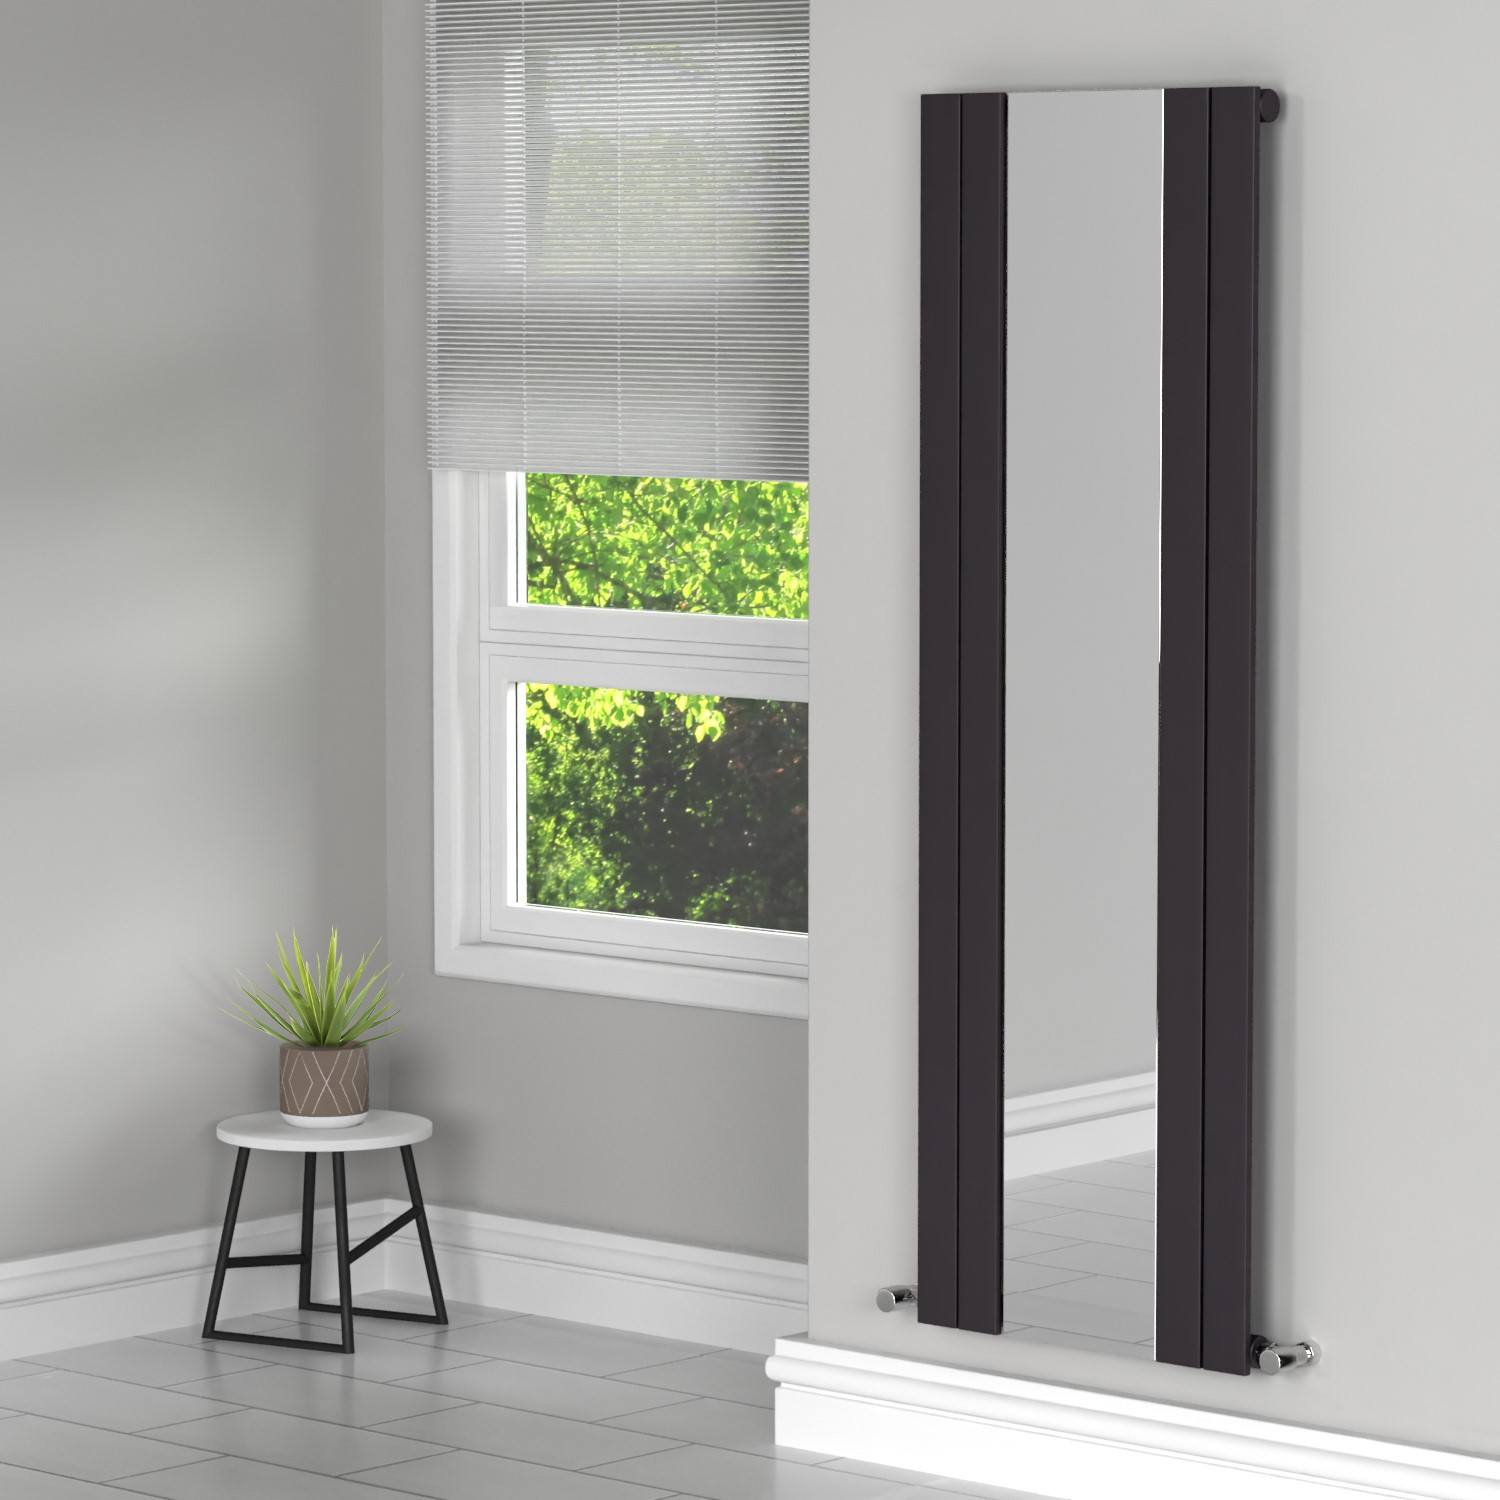 Tanami Anthracite Single Panel Vertical Radiator With Mirror 1800 X 600mm Better Bathrooms